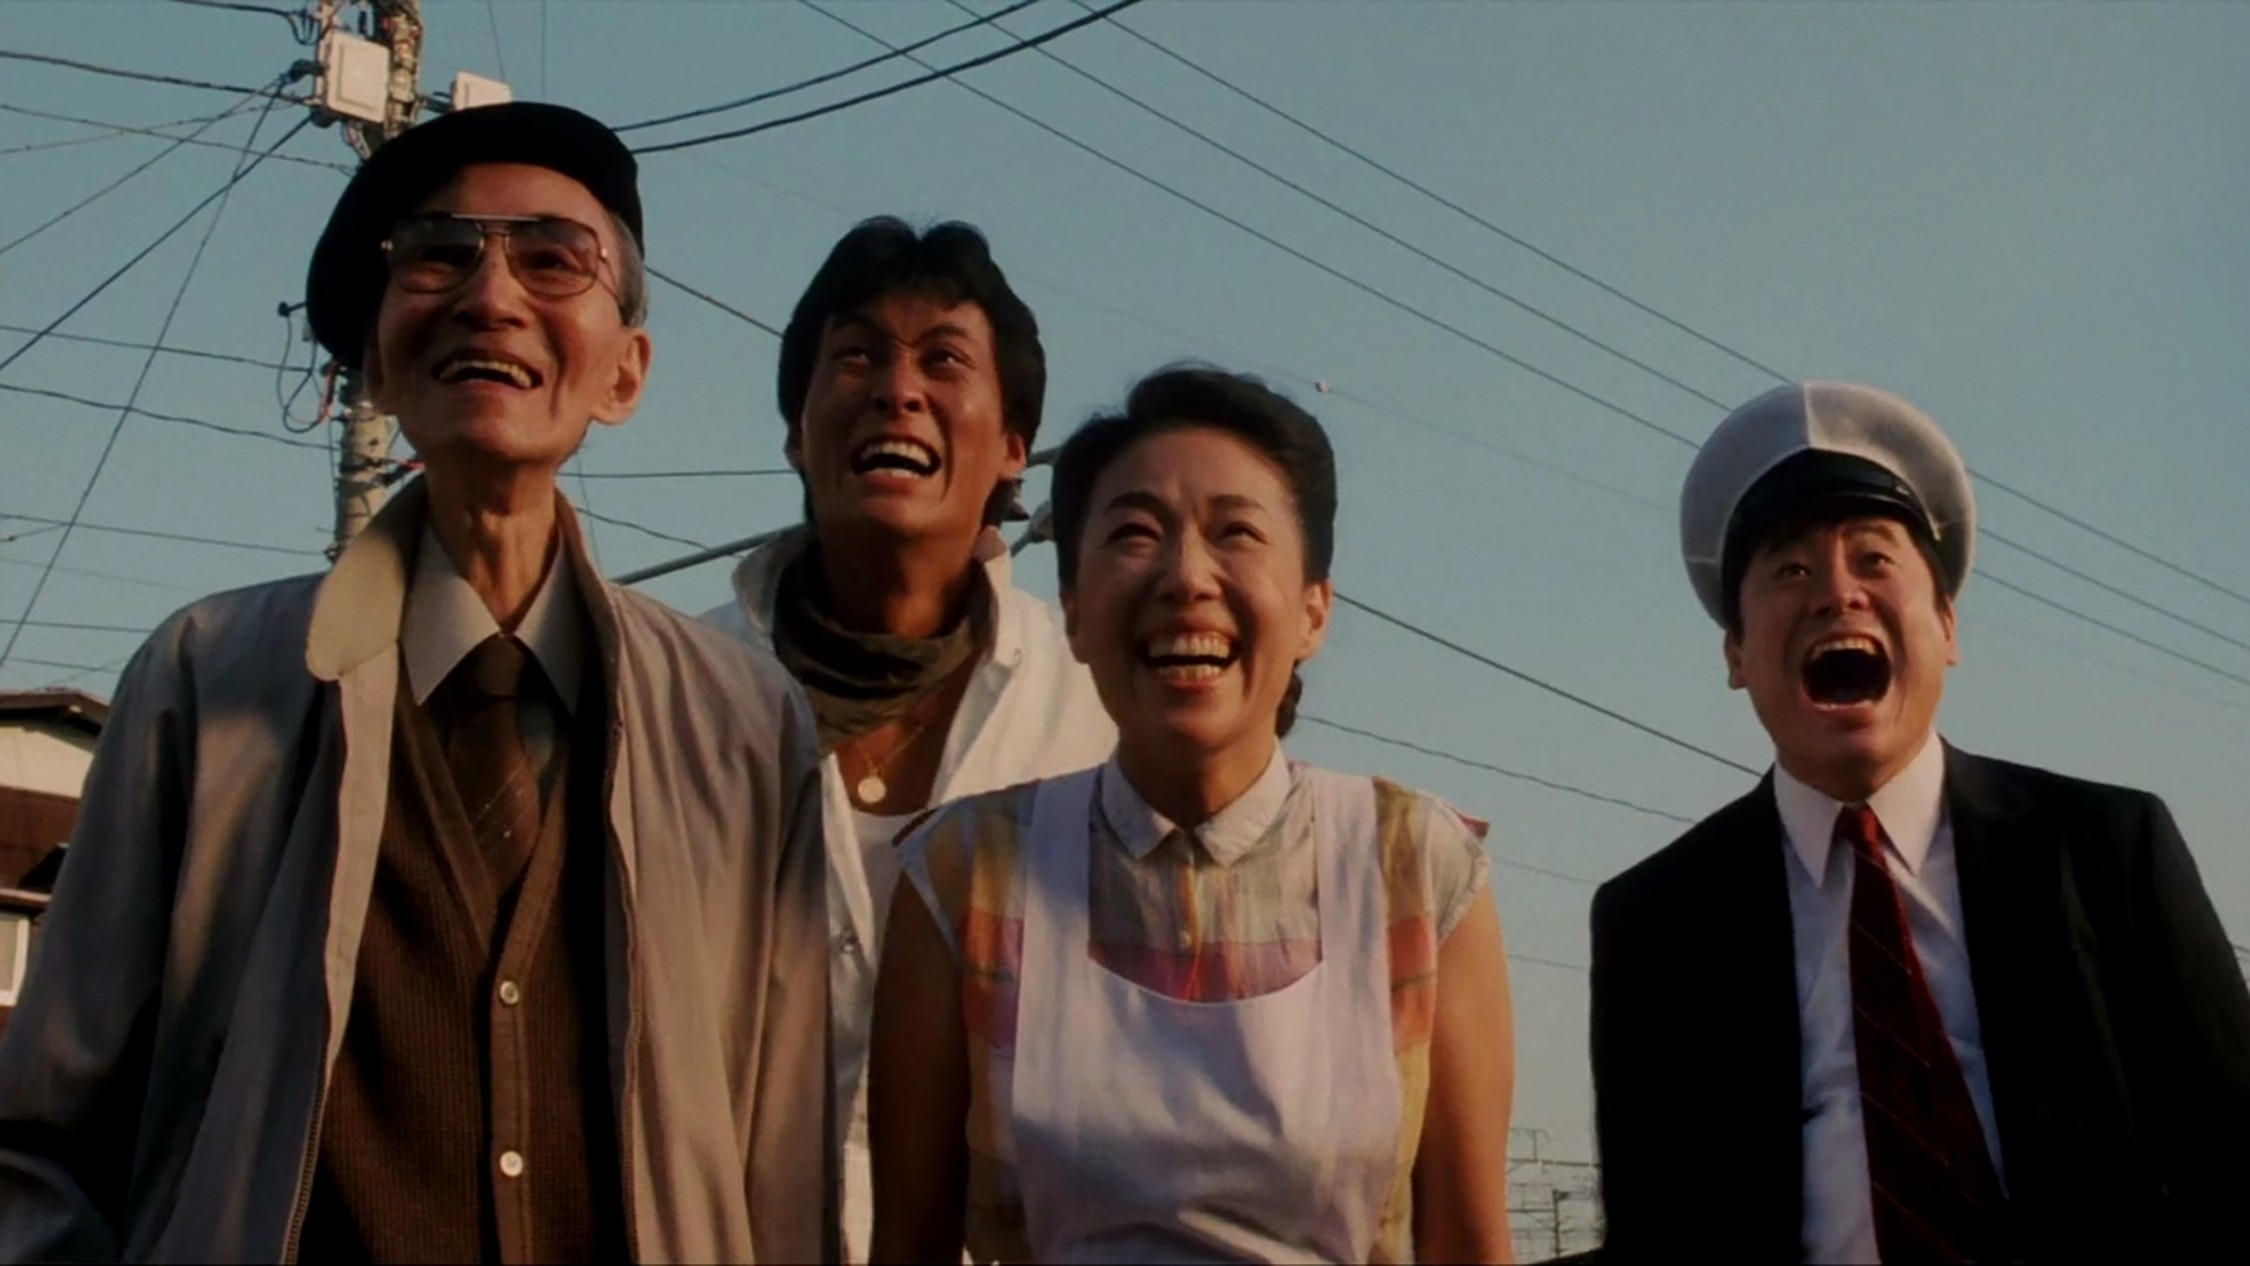 Four people laughing